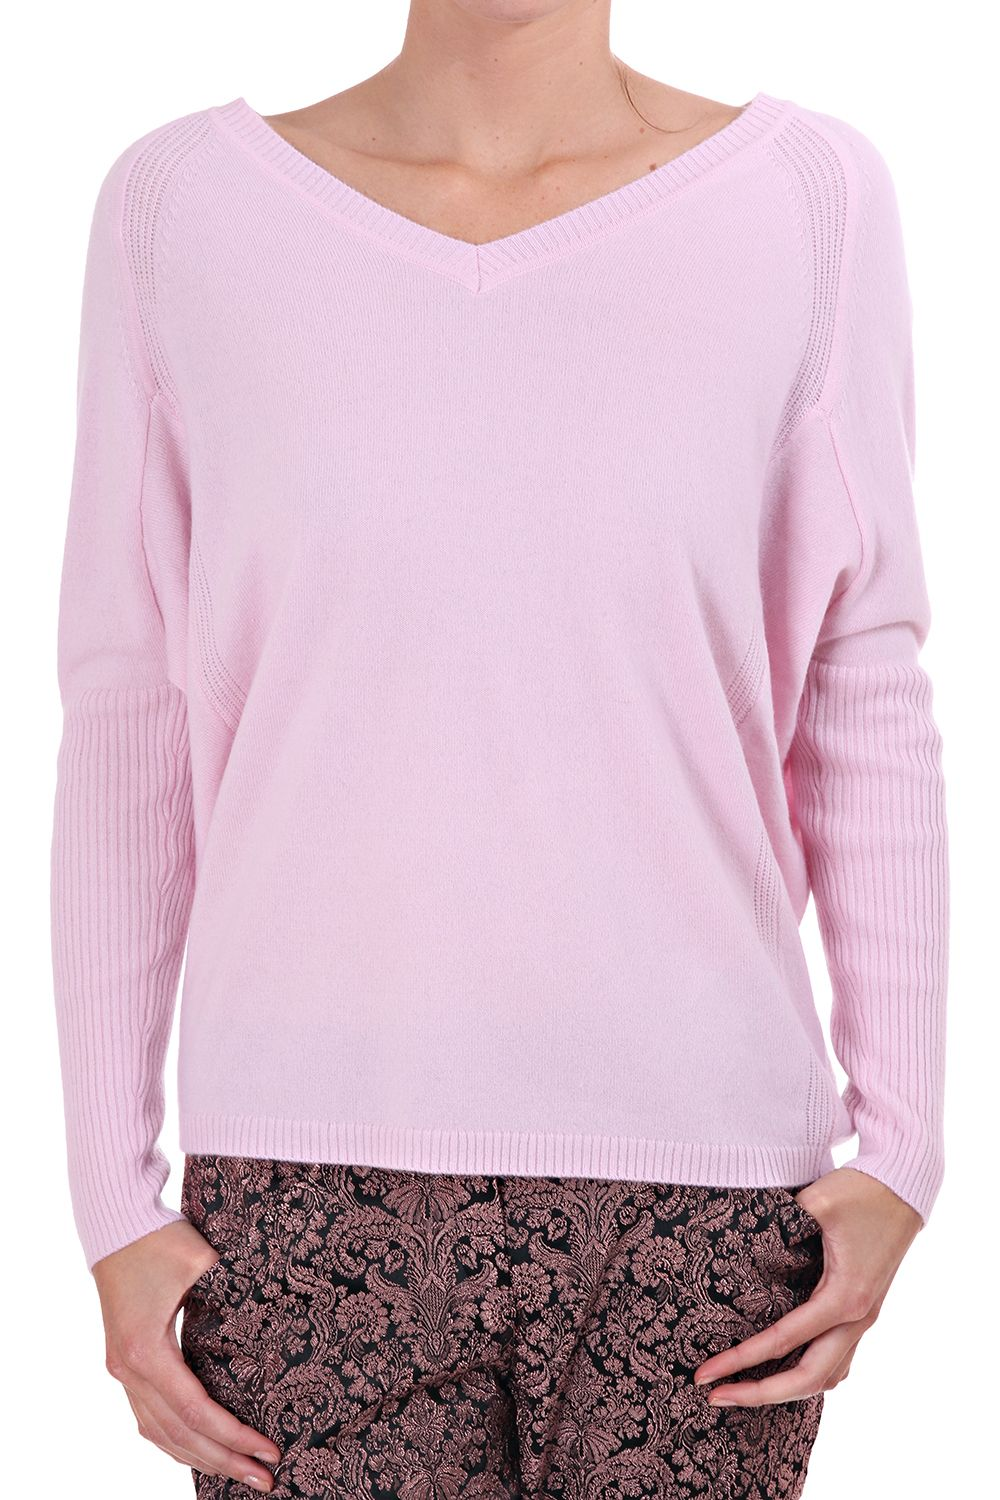 ted baker womens ivetta v neck cashmere sweater pale pink http ...